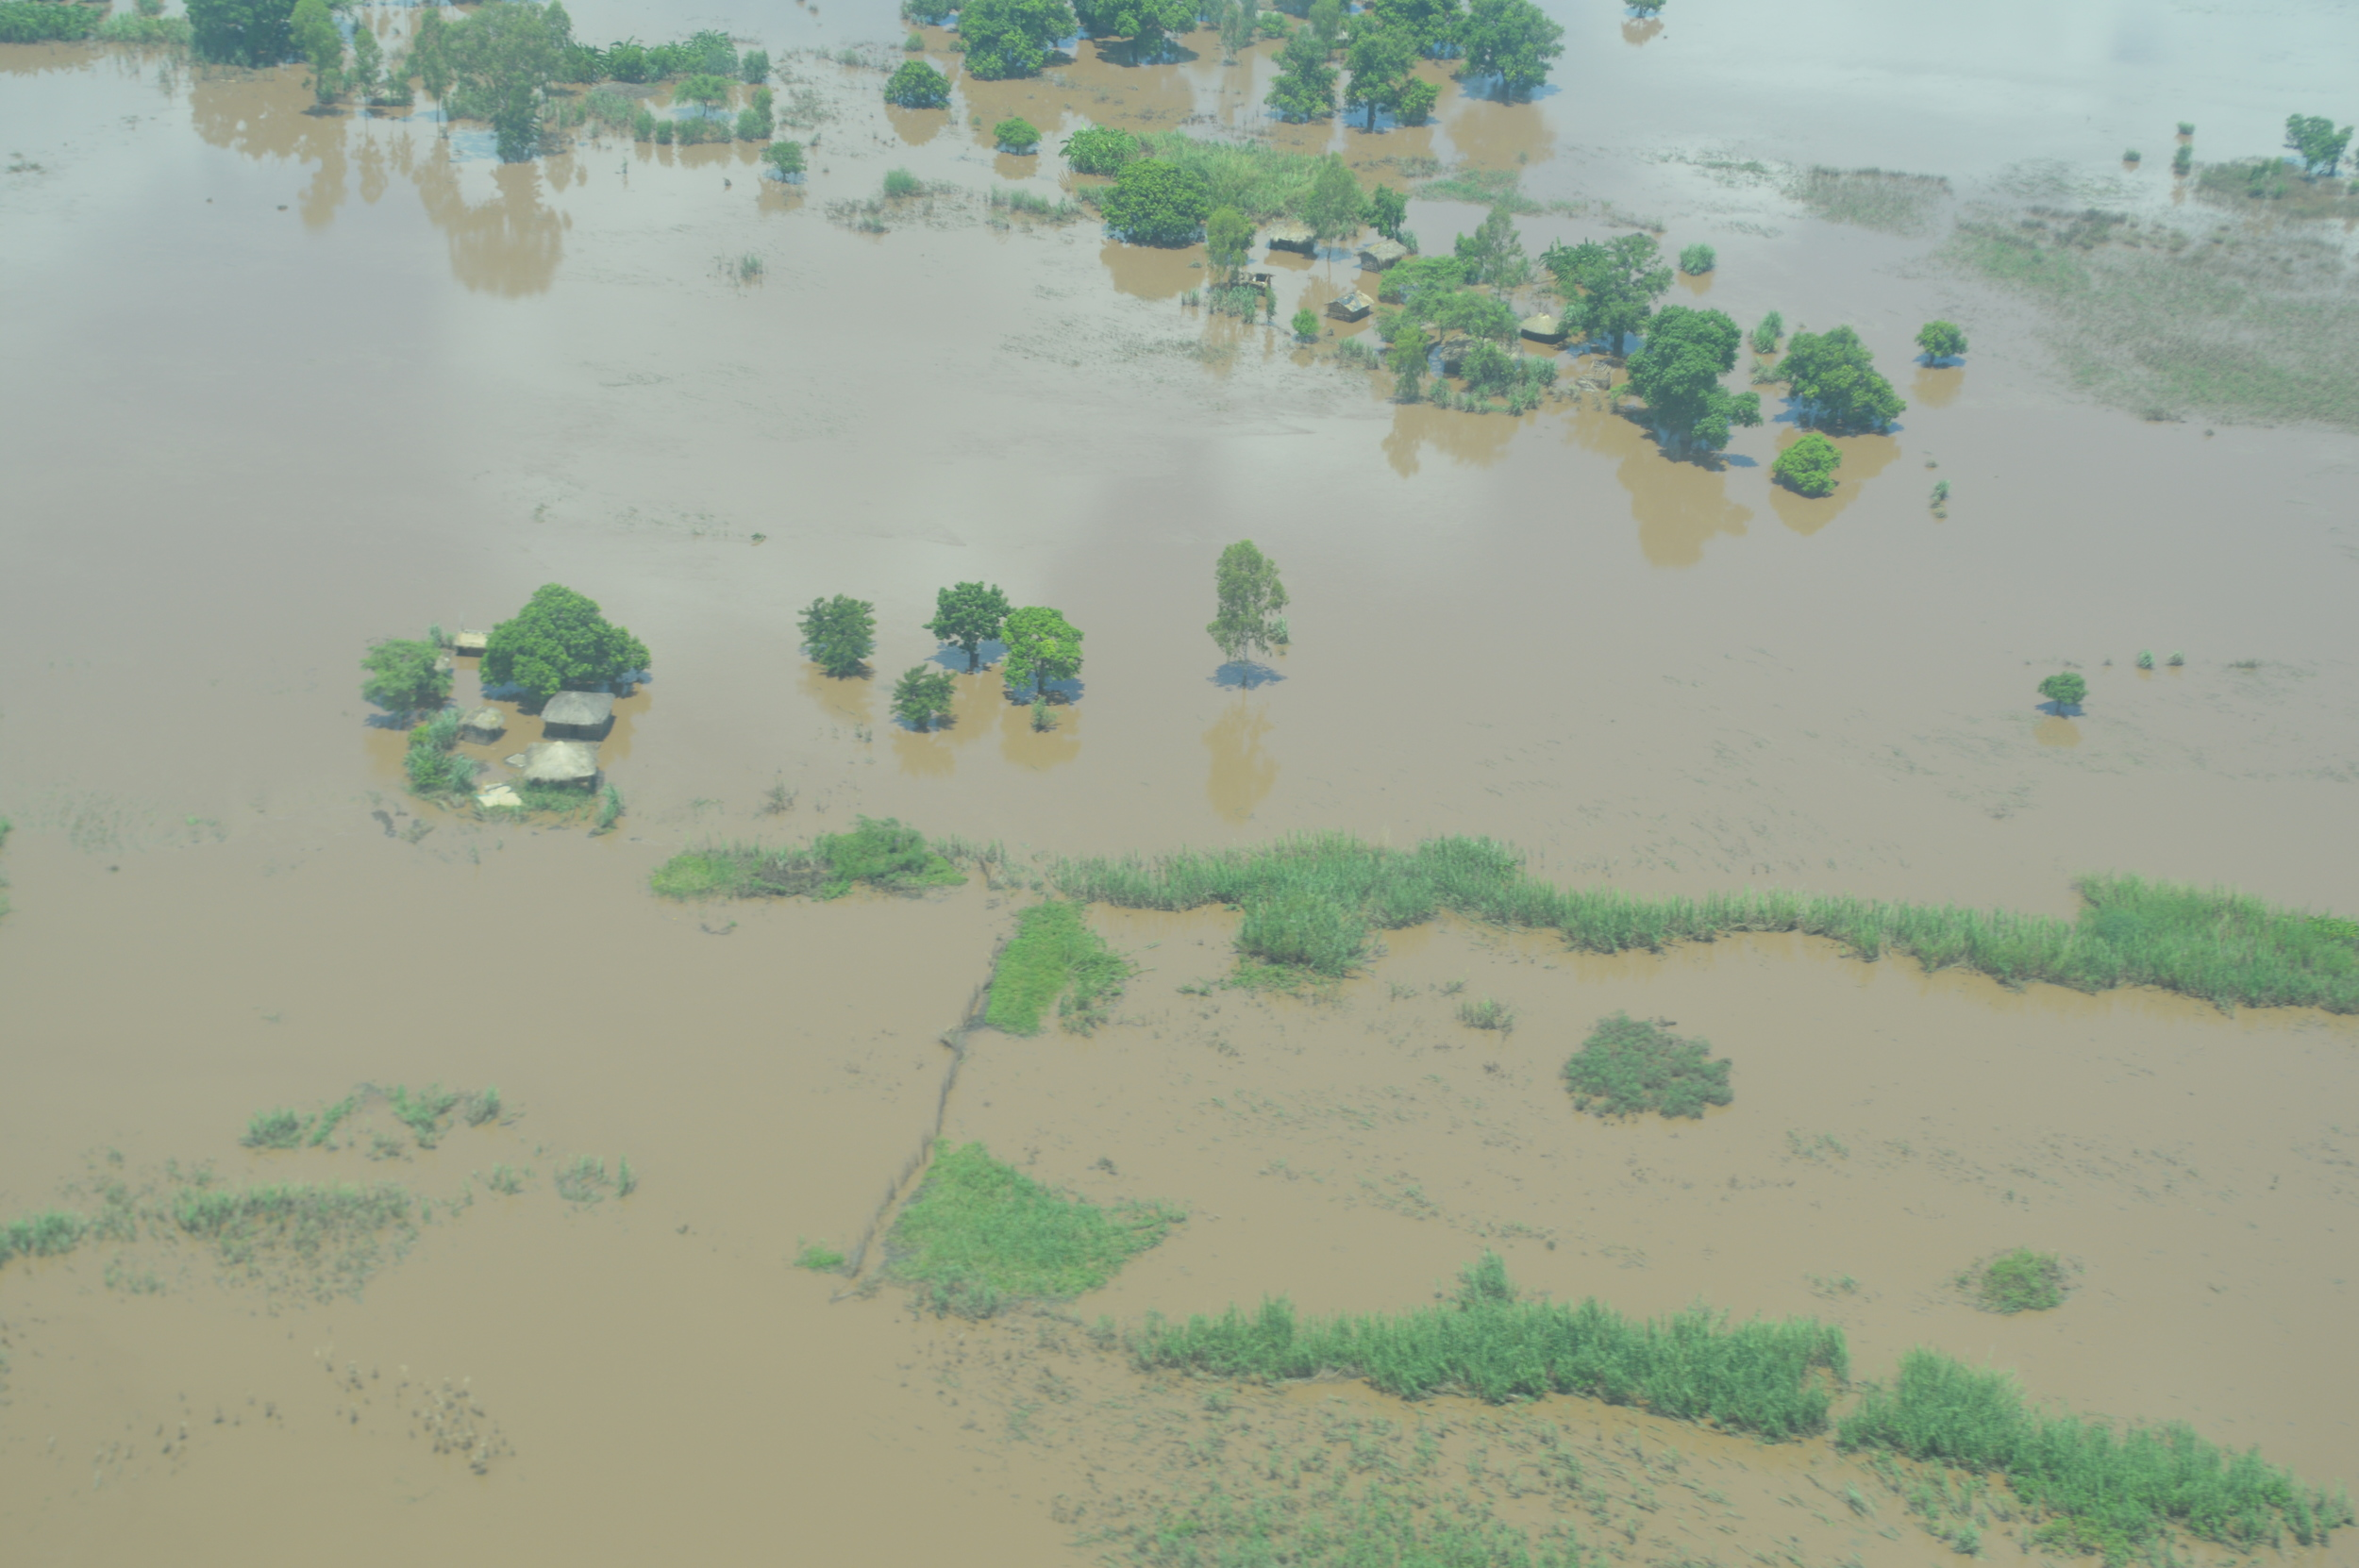 A third of Malawi's territory has been affected by heavy rains and floods.